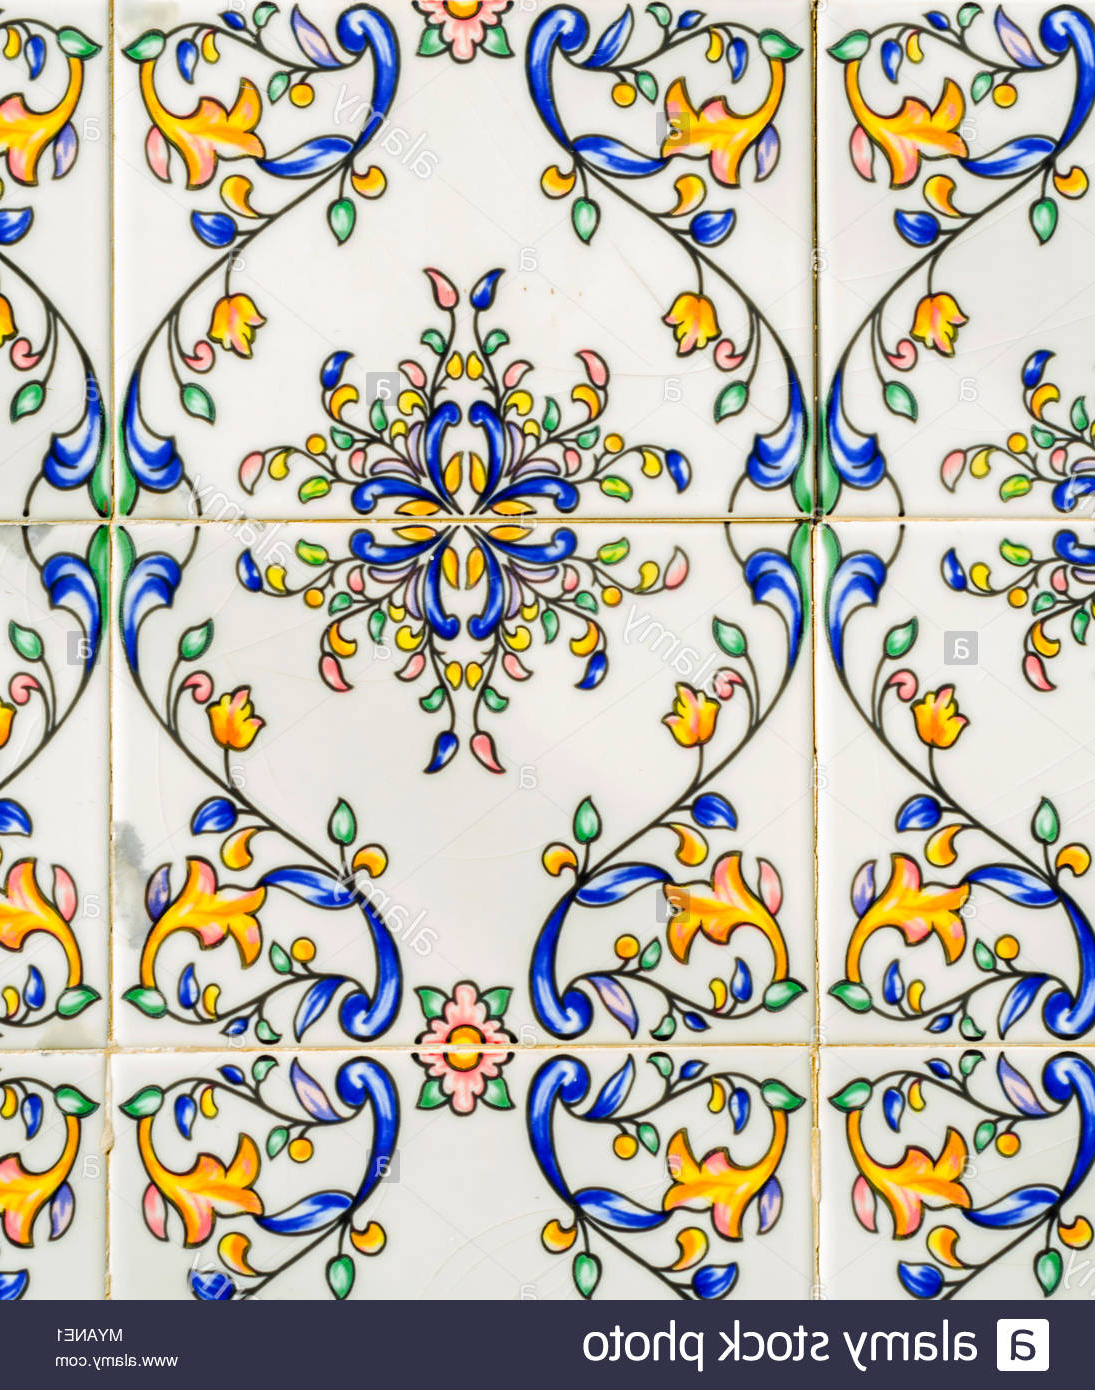 Traditional Ornamental Spanish Decorative Tiles, Original Ceramic Throughout 2020 Spanish Ornamental Wall Decor (Gallery 13 of 20)